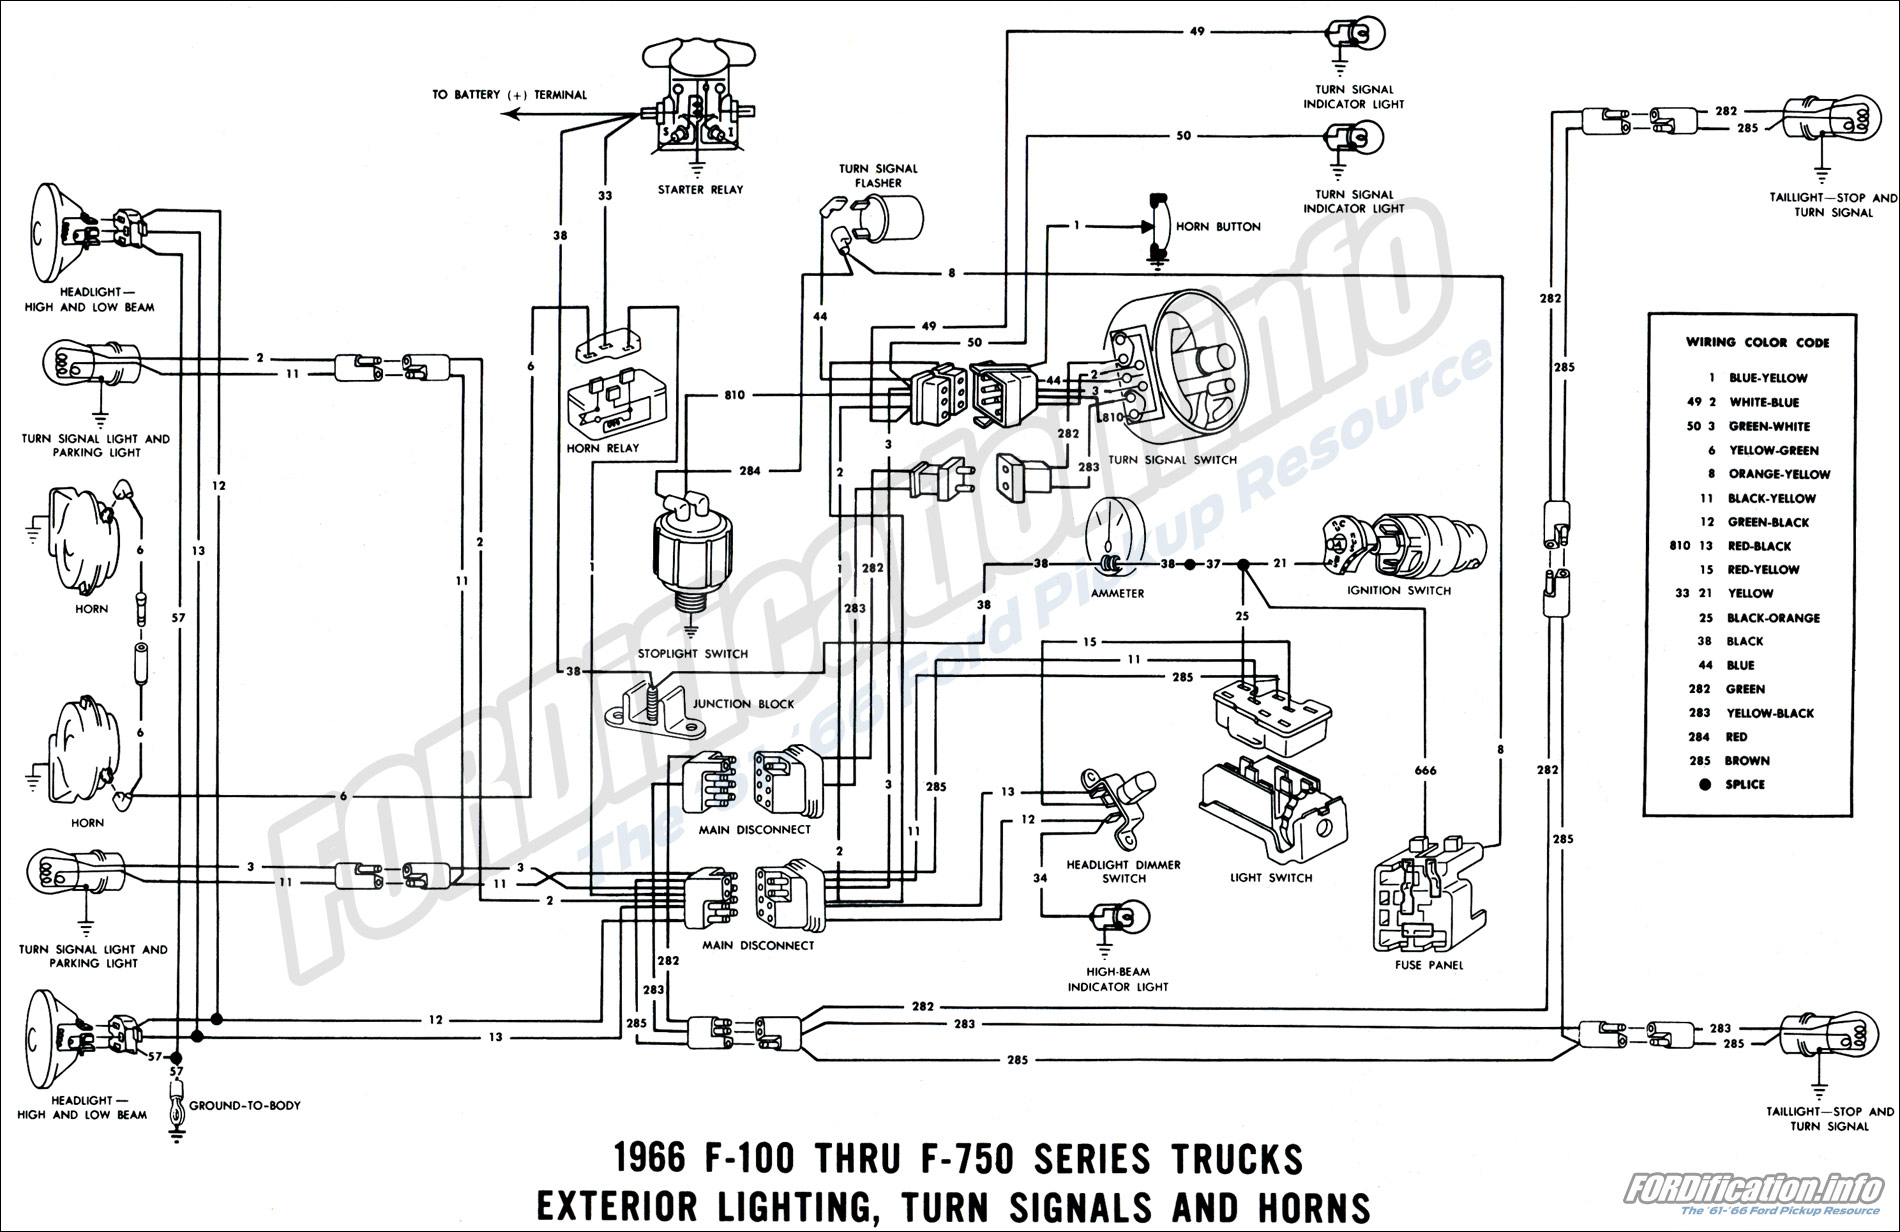 59 chevy pickup wiper wiring 1966 ford truck    wiring    diagrams fordification info the  1966 ford truck    wiring    diagrams fordification info the